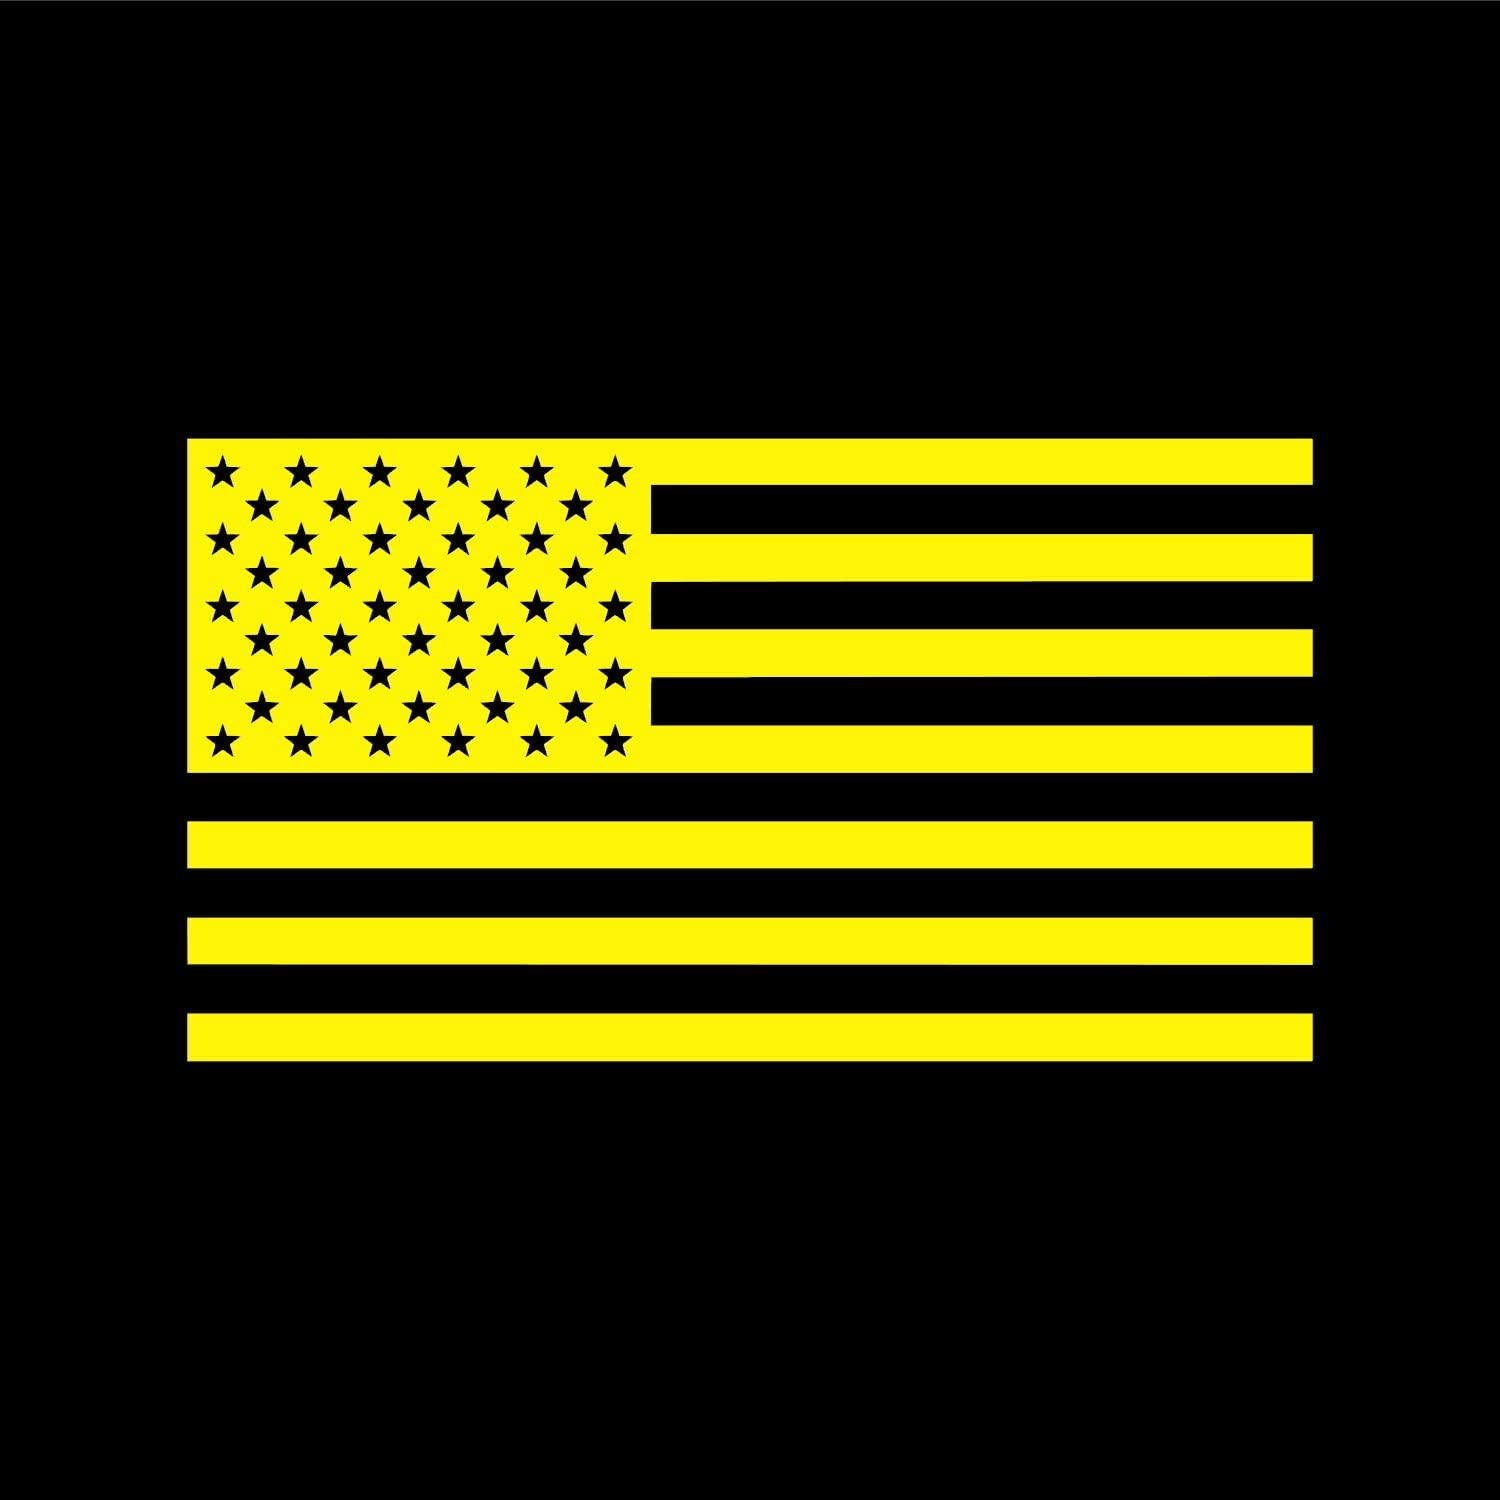 American US Flag [Pick Color/Size] Vinyl Decal Sticker for Laptop/Car/Truck/Jeep/Window/Bumper (10in x 5.5in, Yellow)